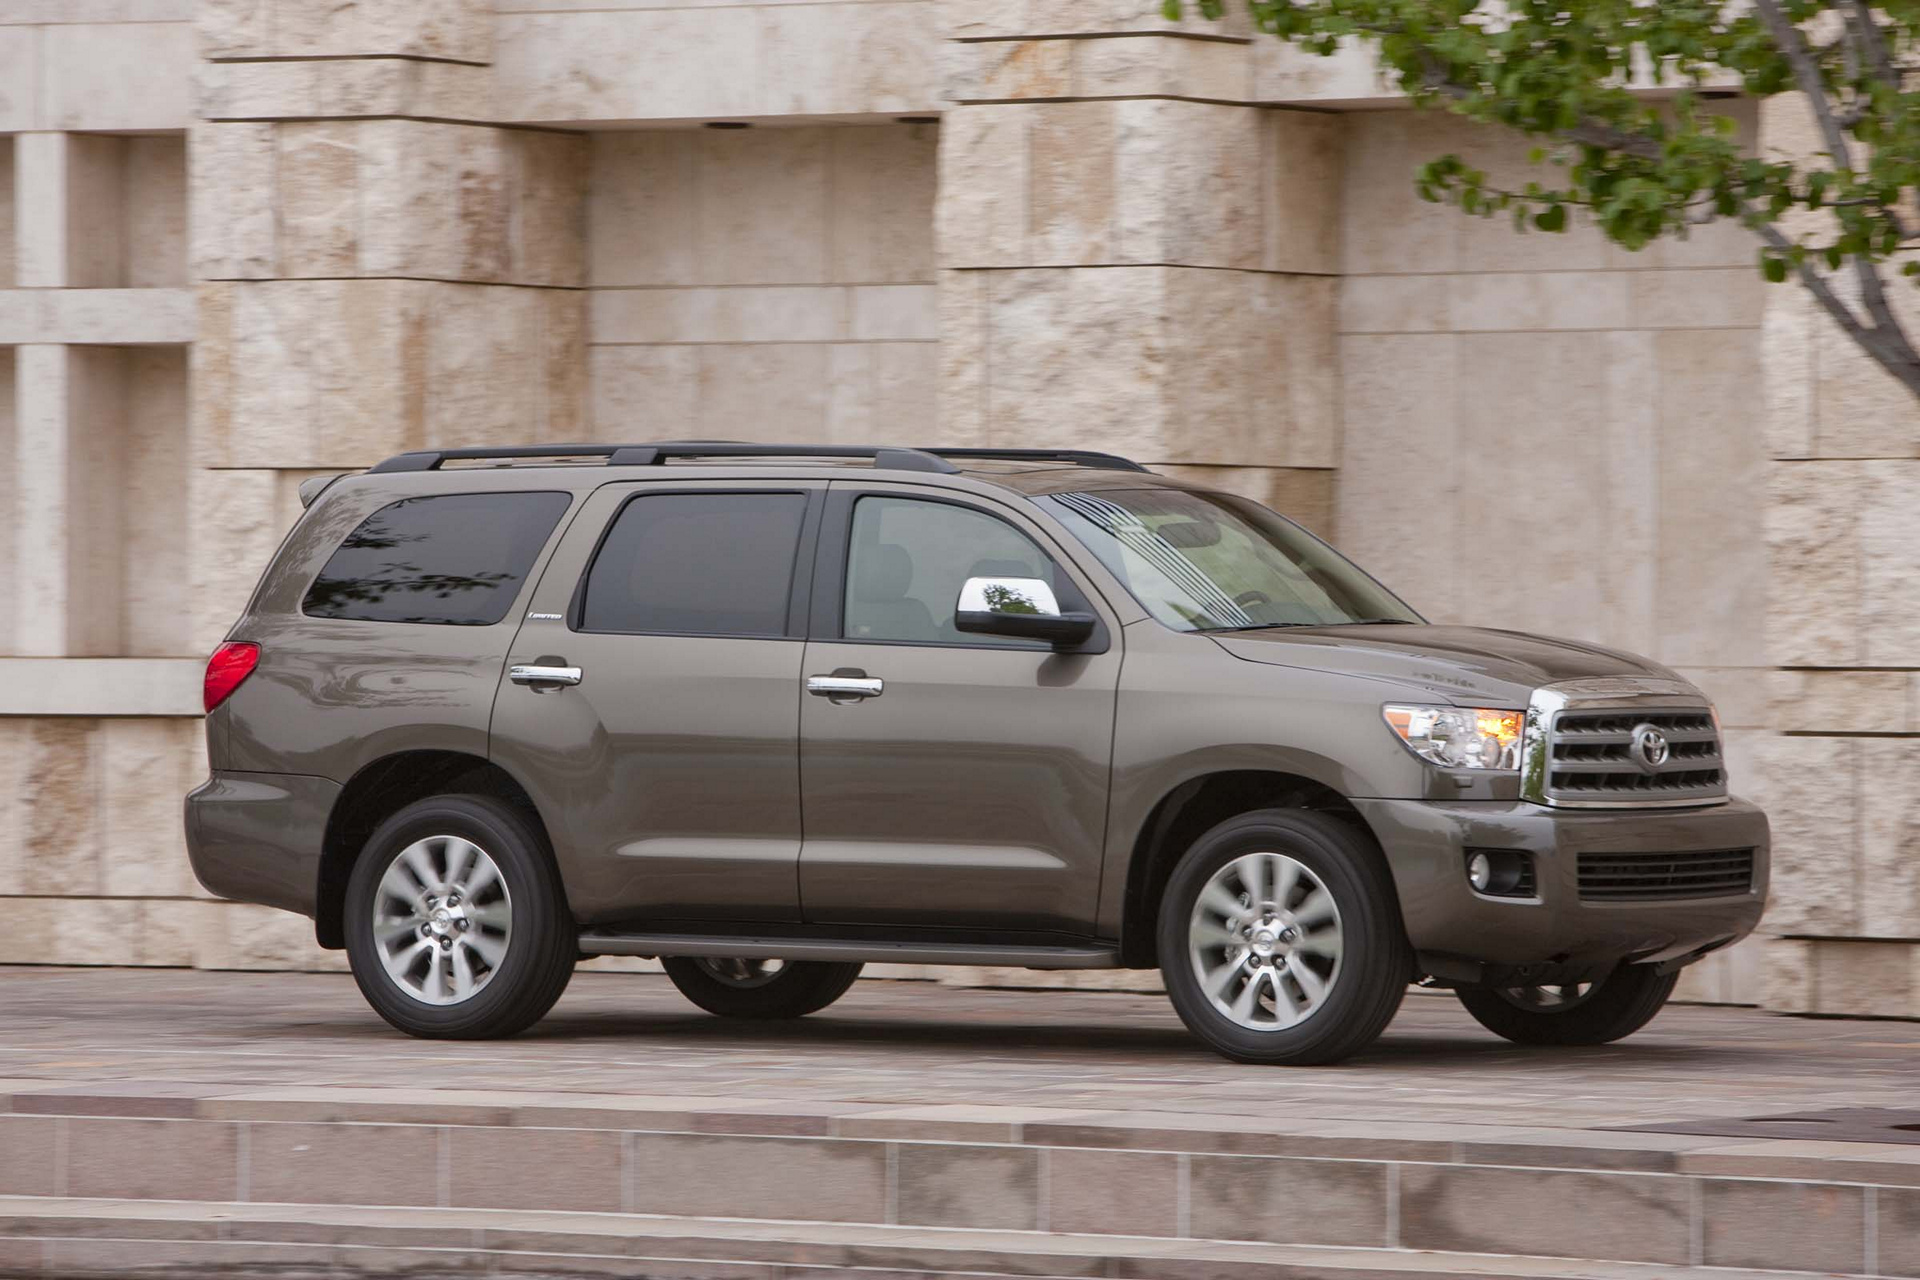 2017 Toyota Sequoia © Toyota Motor Corporation